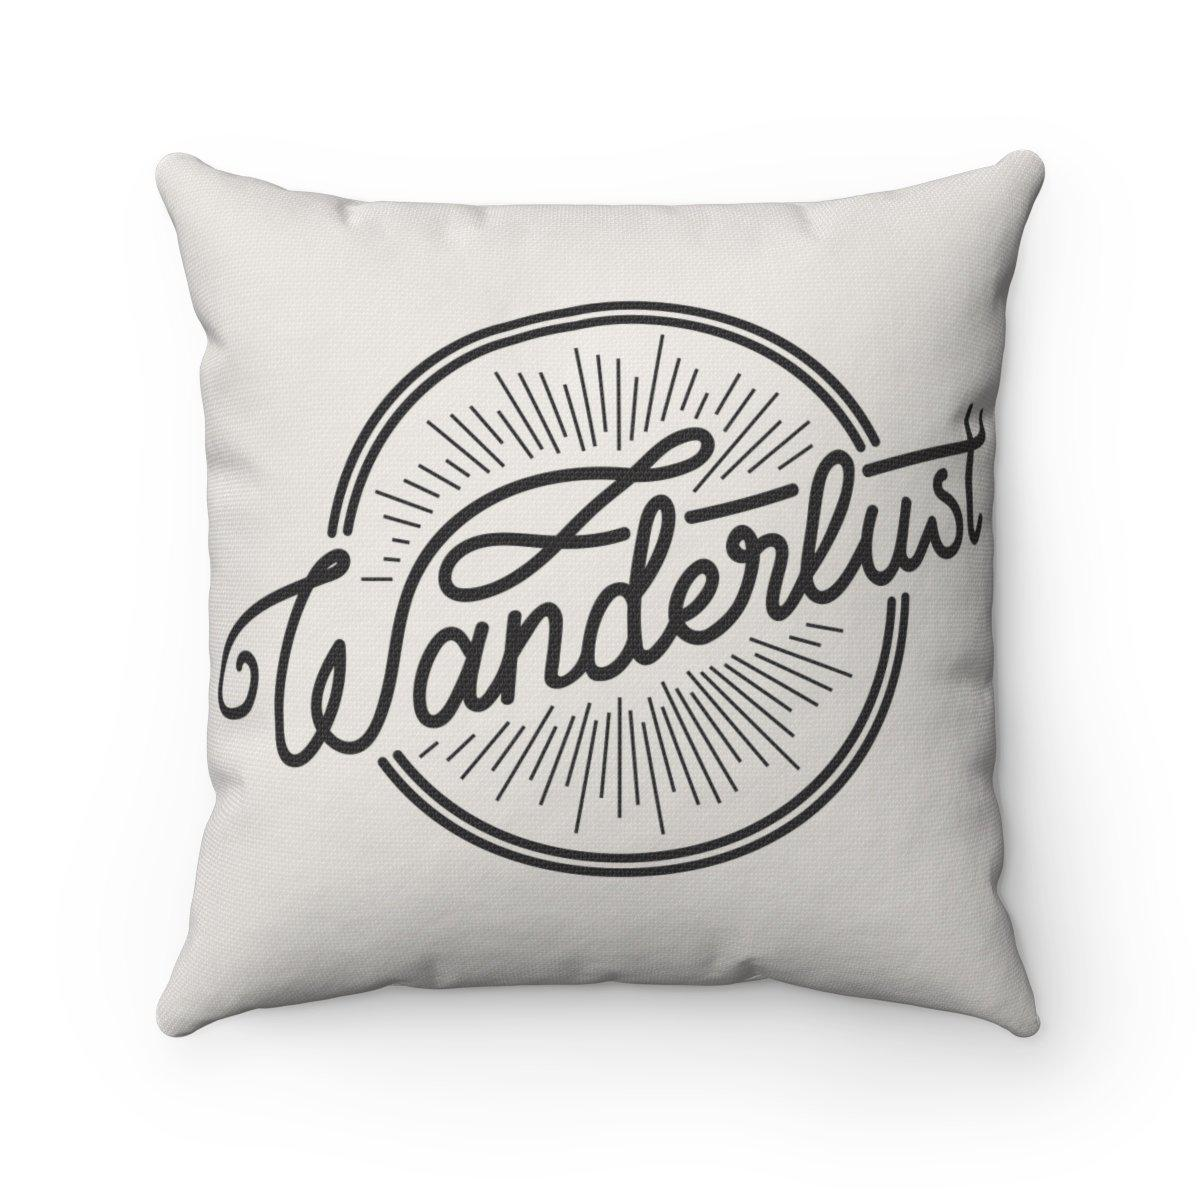 Wanderlust/ Journey 2 in 1 Double sided contemporary decorative cushion cover-Home Decor - Decorative Accents - Pillows & Throws - Decorative Pillows-Maison d'Elite-Très Elite